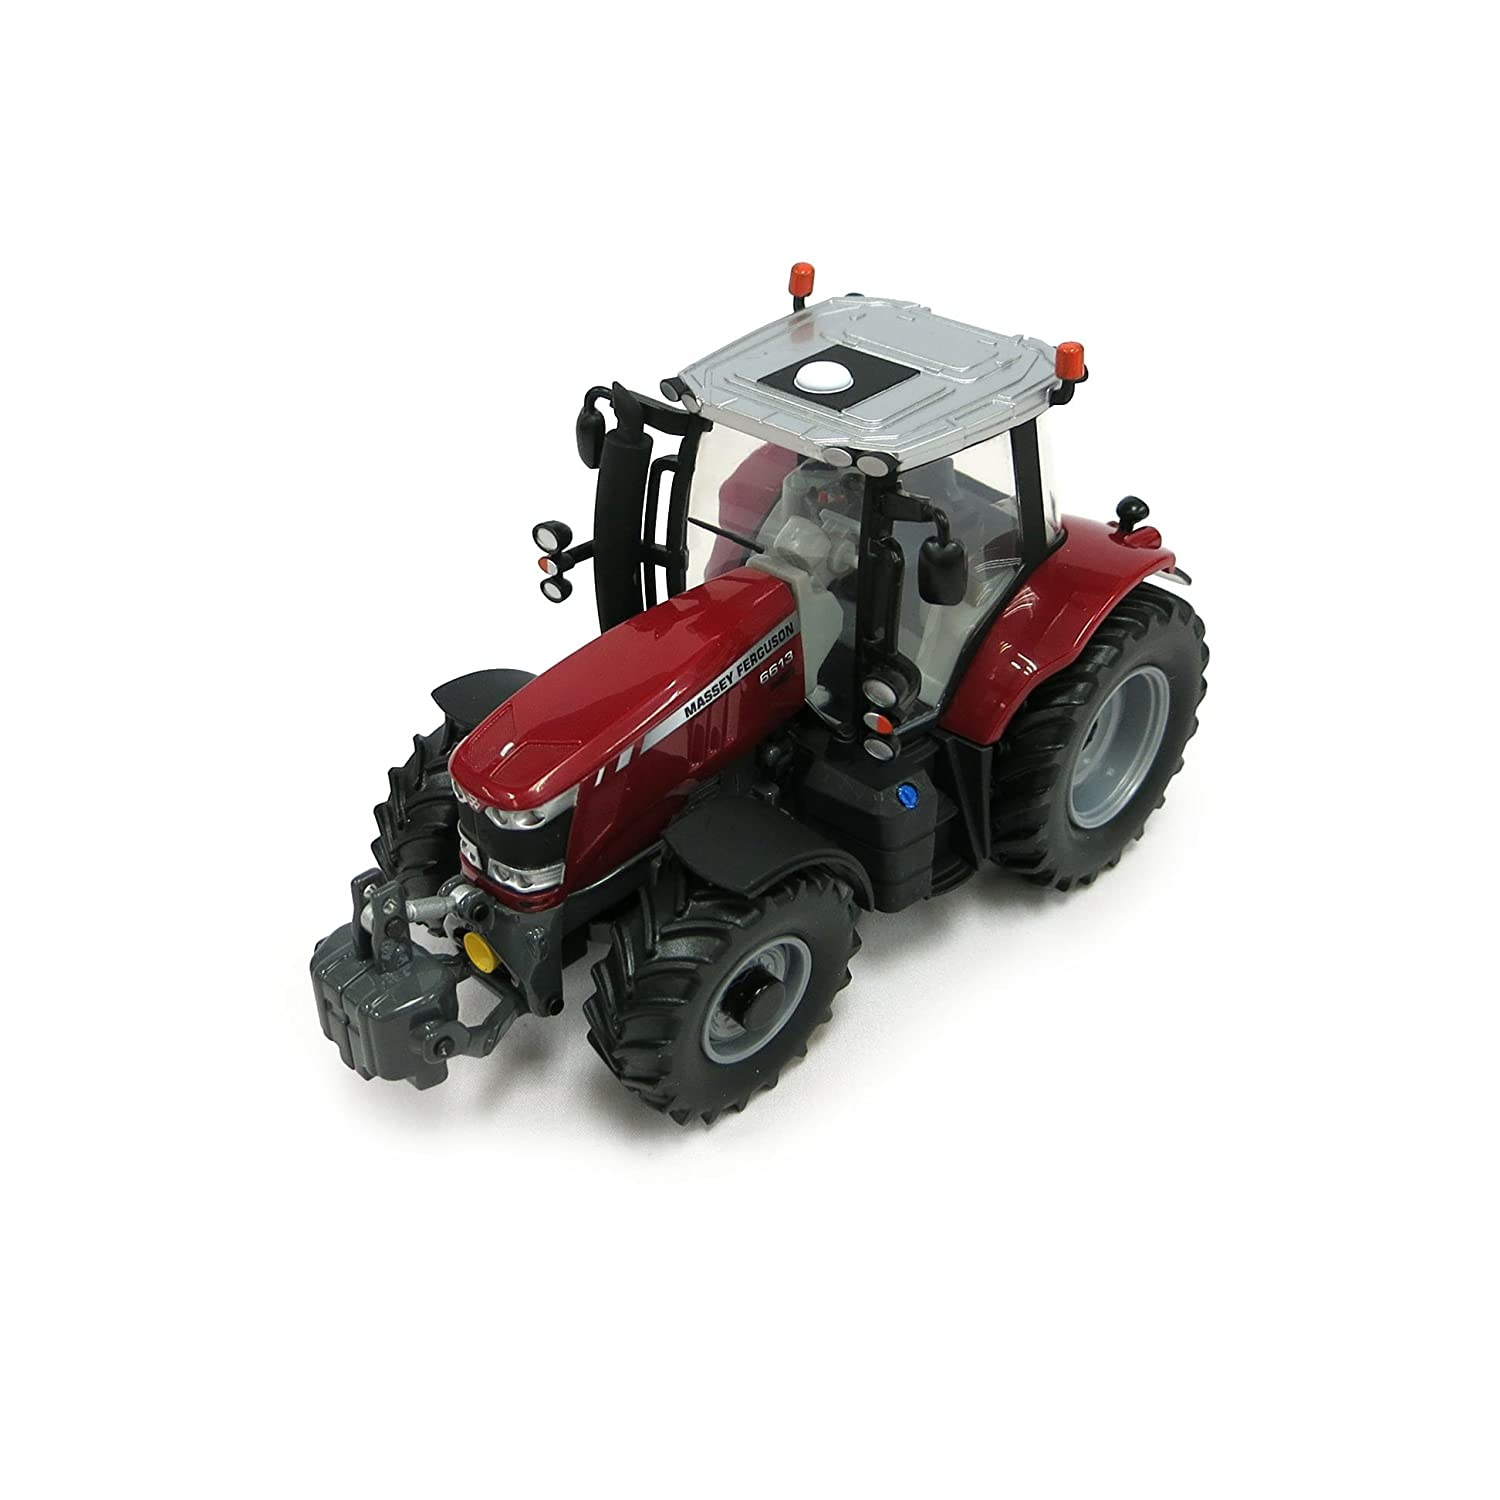 Britains 1:32 Massey Ferguson Replica 5613 Tractor Collectable Farm Toy TOMY 43053A1